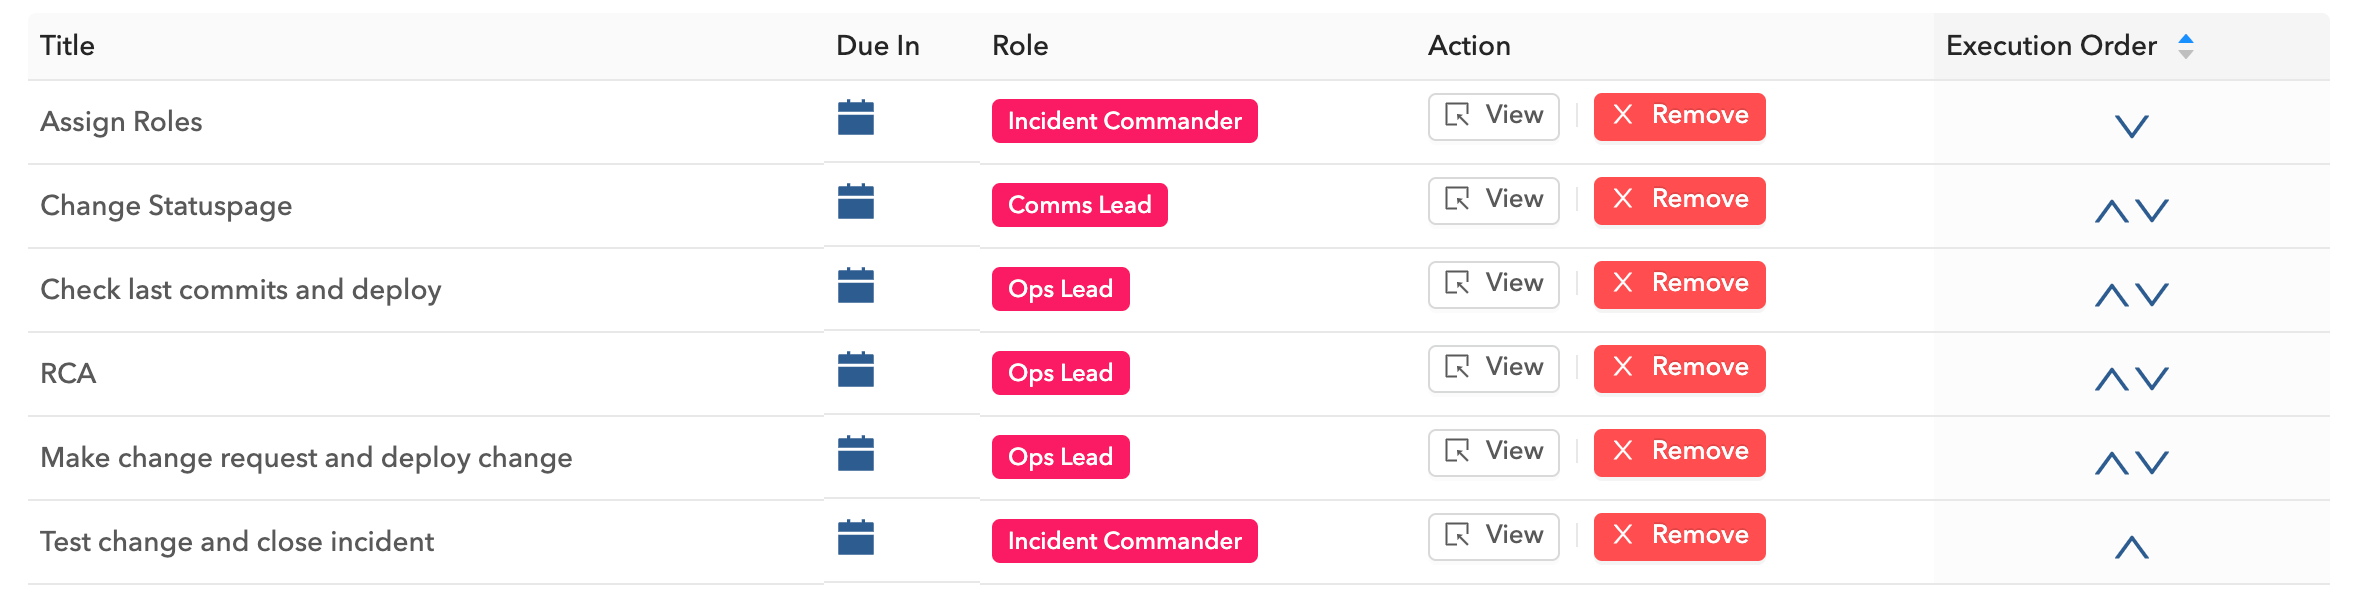 A sample checklist of tasks auto-assigned for incidents for a service